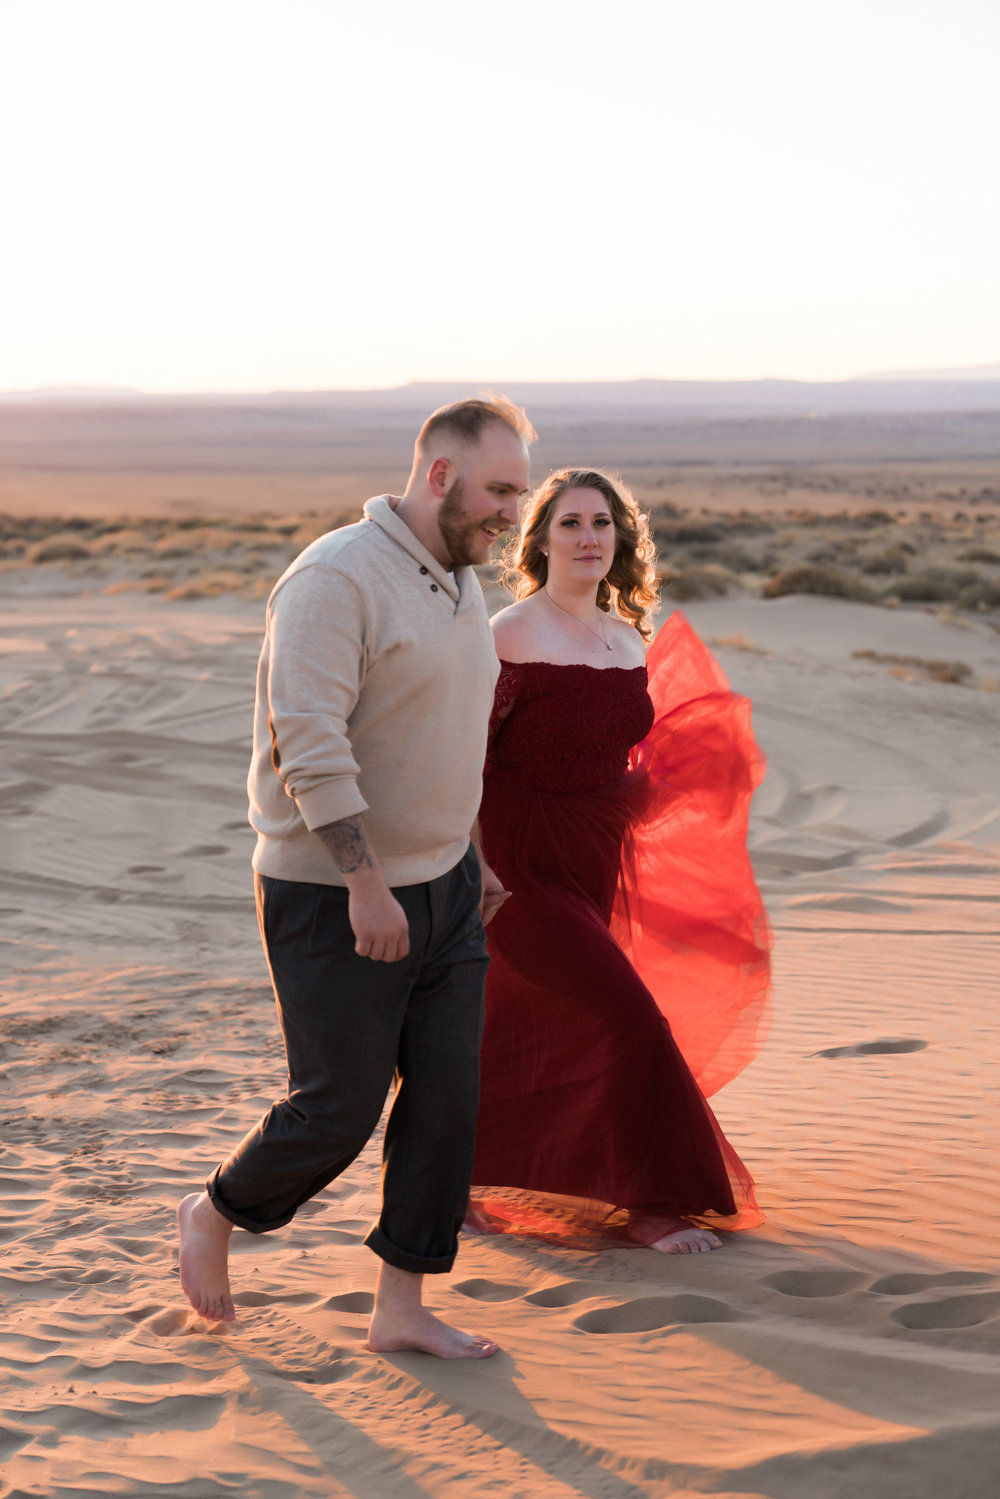 NewMexico-Sand-Dunes-Engagement-Carissa-and-Ben-1253.jpg